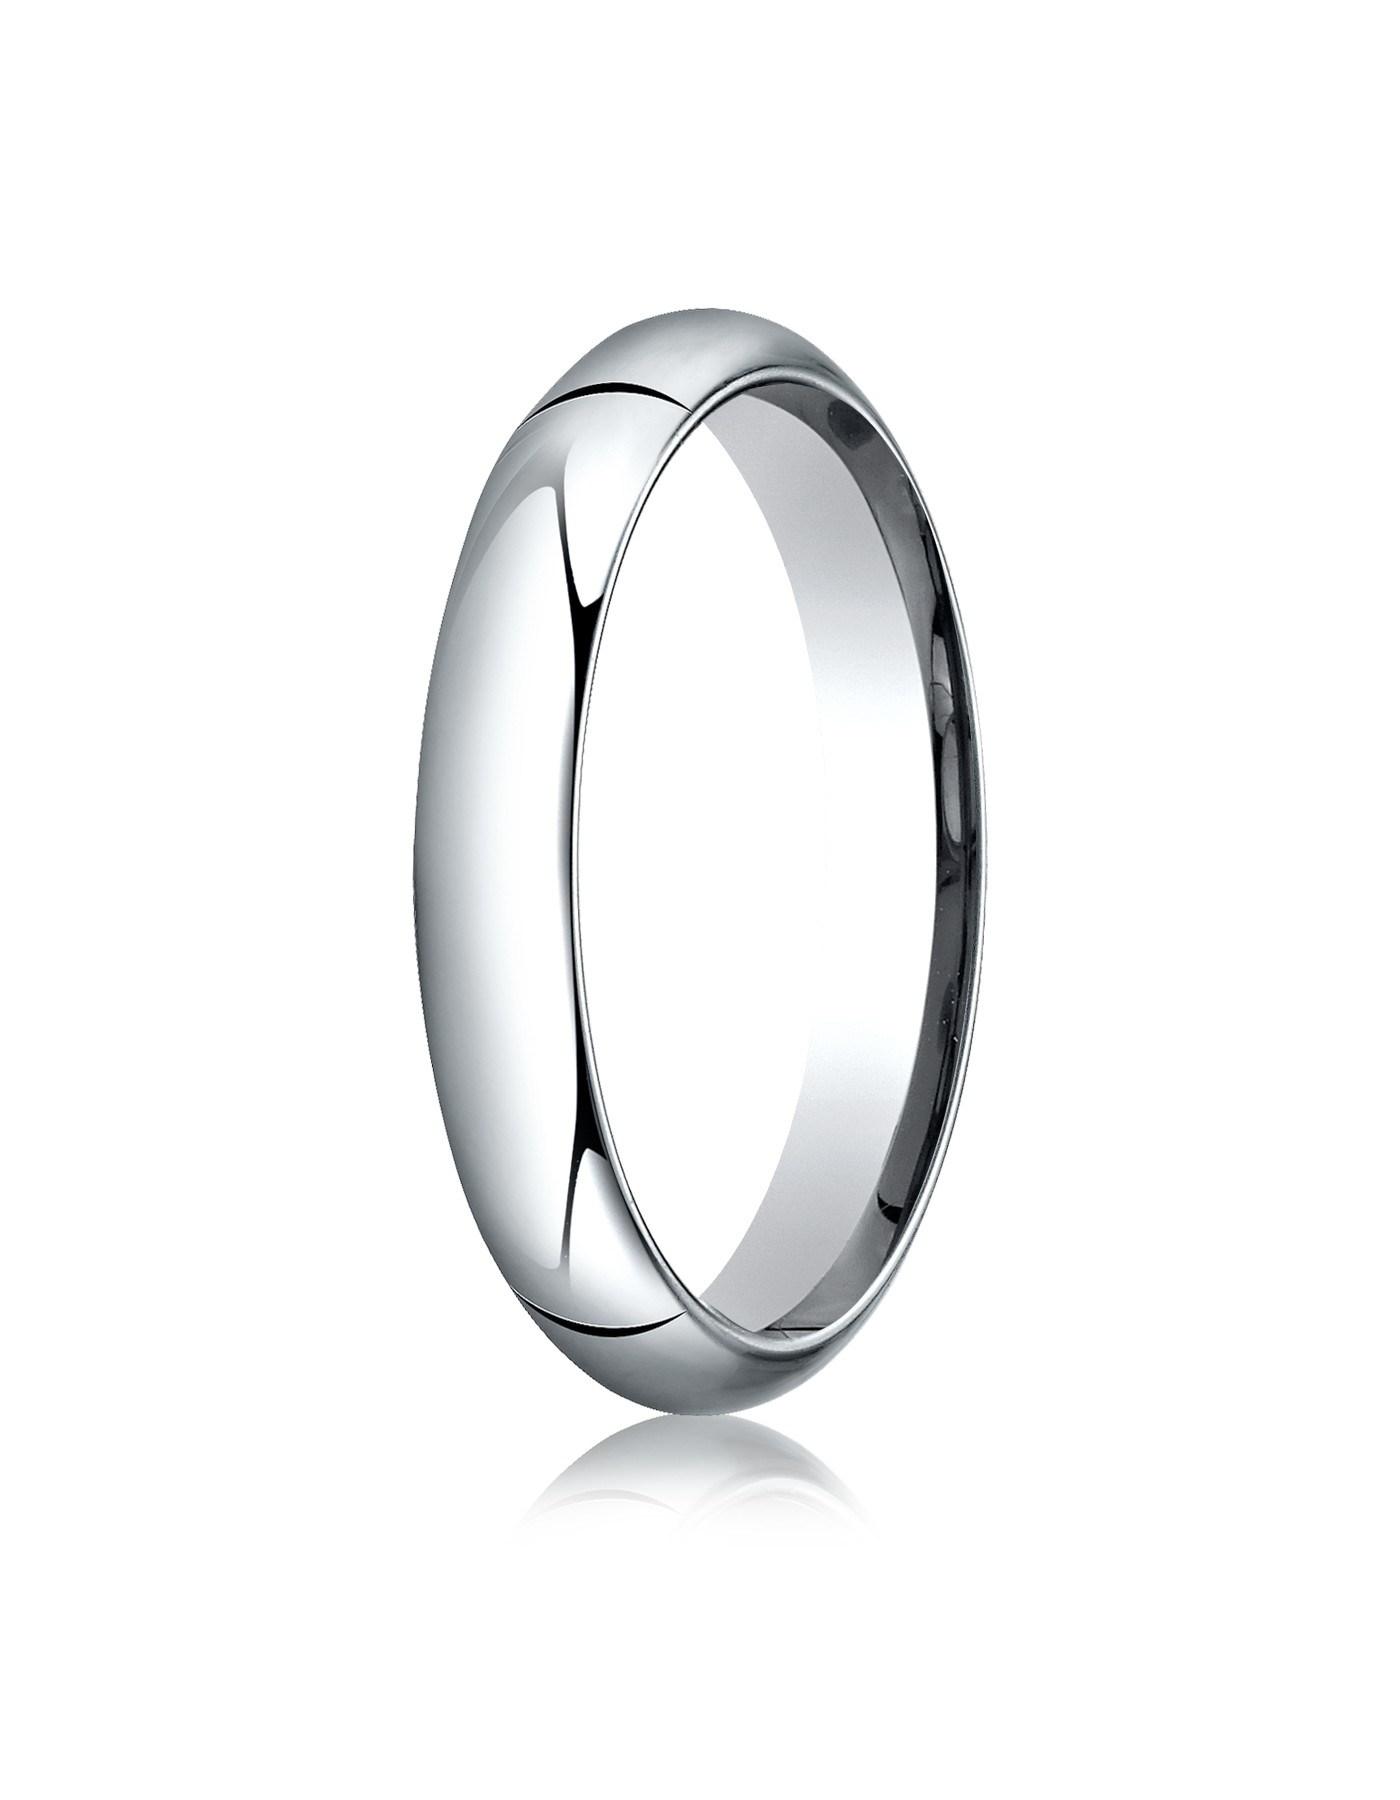 14k White Gold 4mm High Dome Comfort-fit Ring